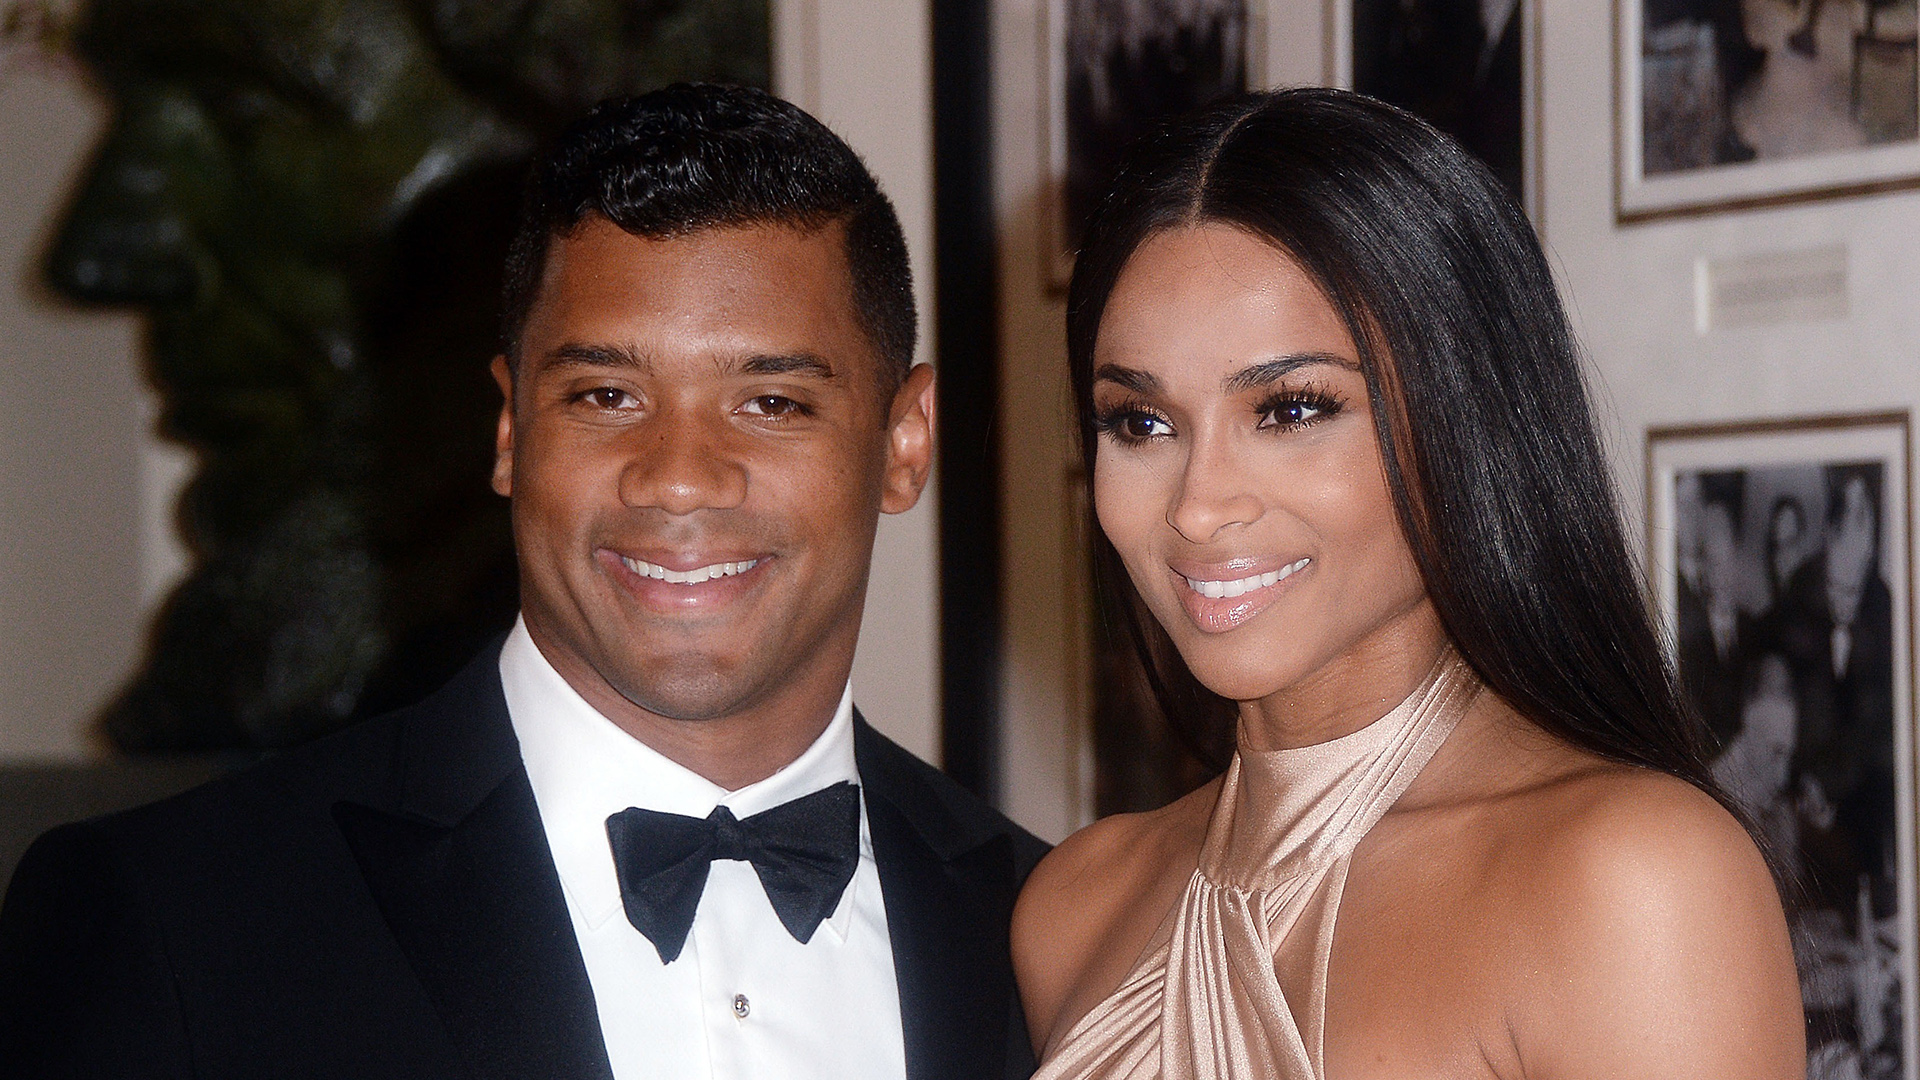 Chrissy Teigen Congratulates Pals Ciara and Russell Wilson on Their Wedding: 'They're Going to Be the Ultimate Team Now'